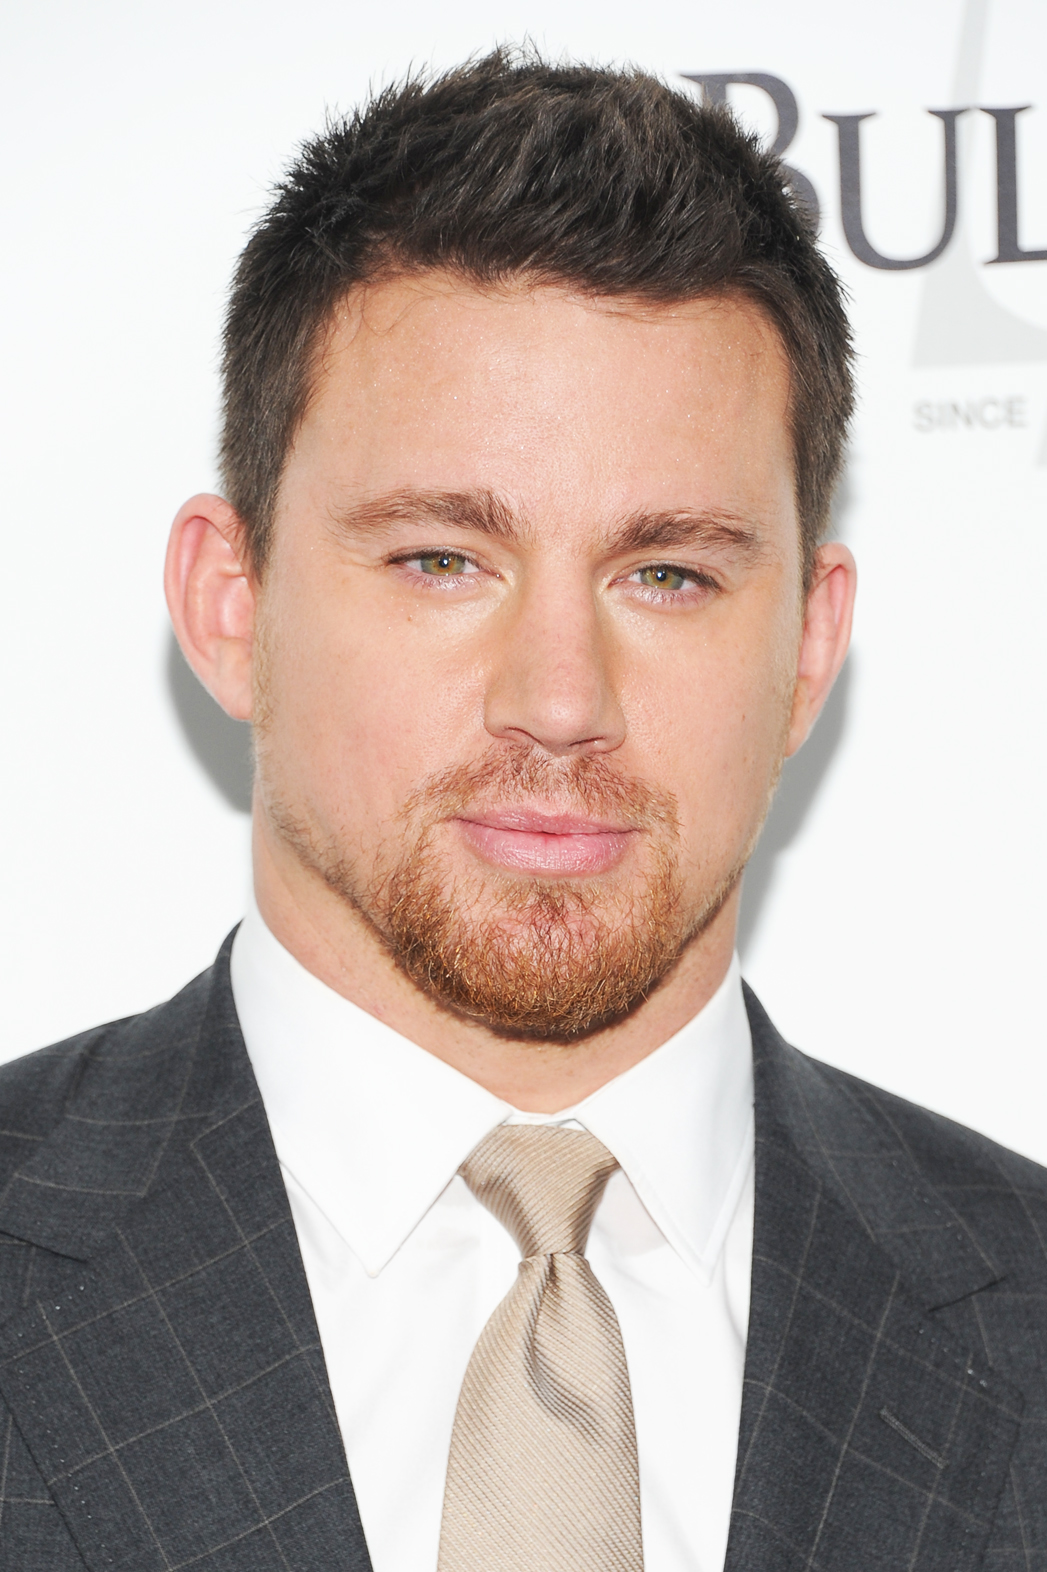 Channing Tatum White House Down Arrivals - P 2014